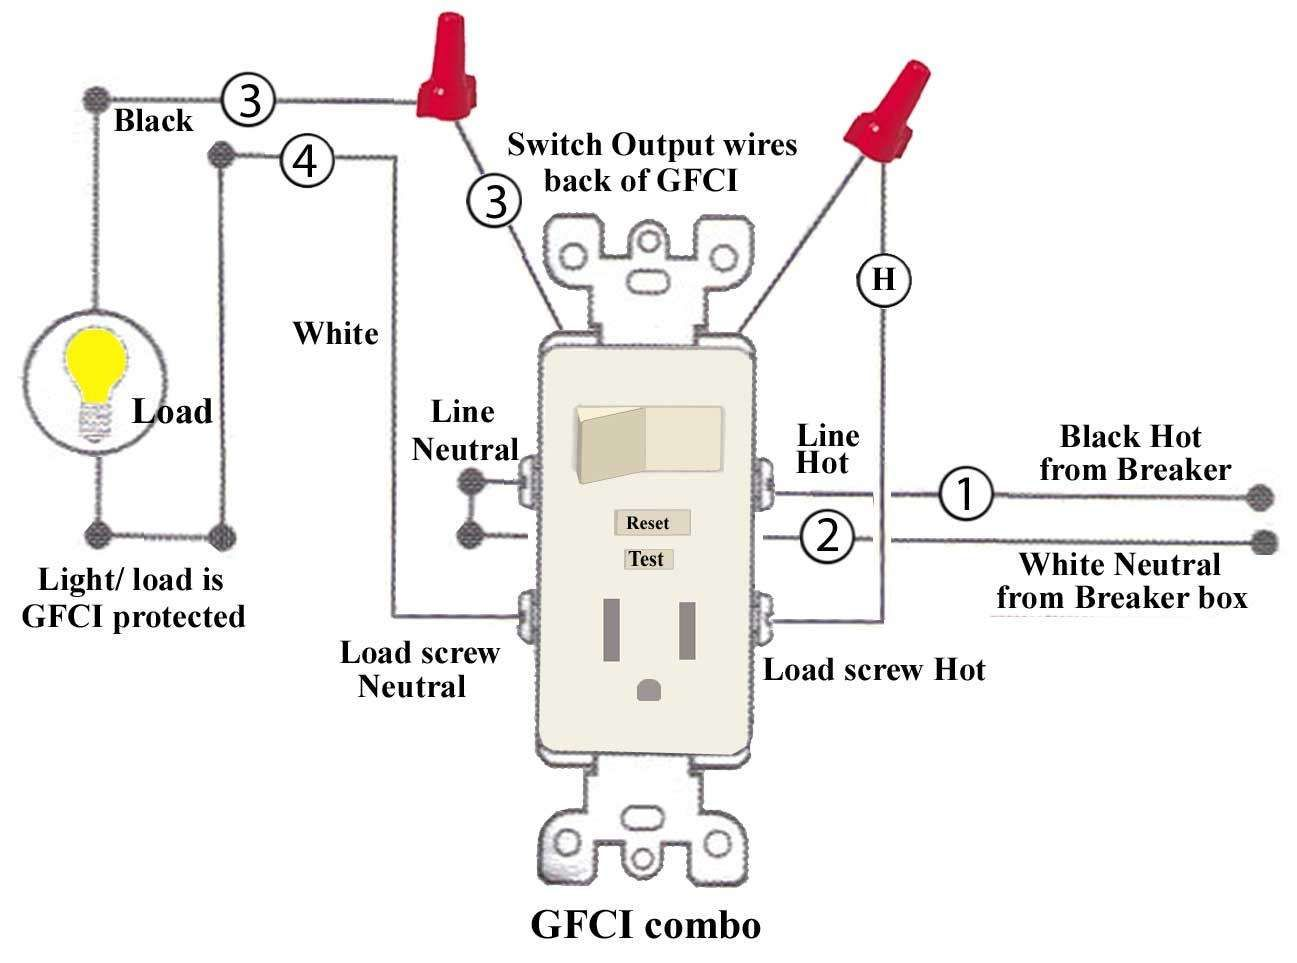 Wiring Diagram Outlets Beautiful Wiring Diagram Outlets Splendid Line Wiring Diagram Help Signalsbrake Light Code For Gfci Wire Switch Light Switch Wiring